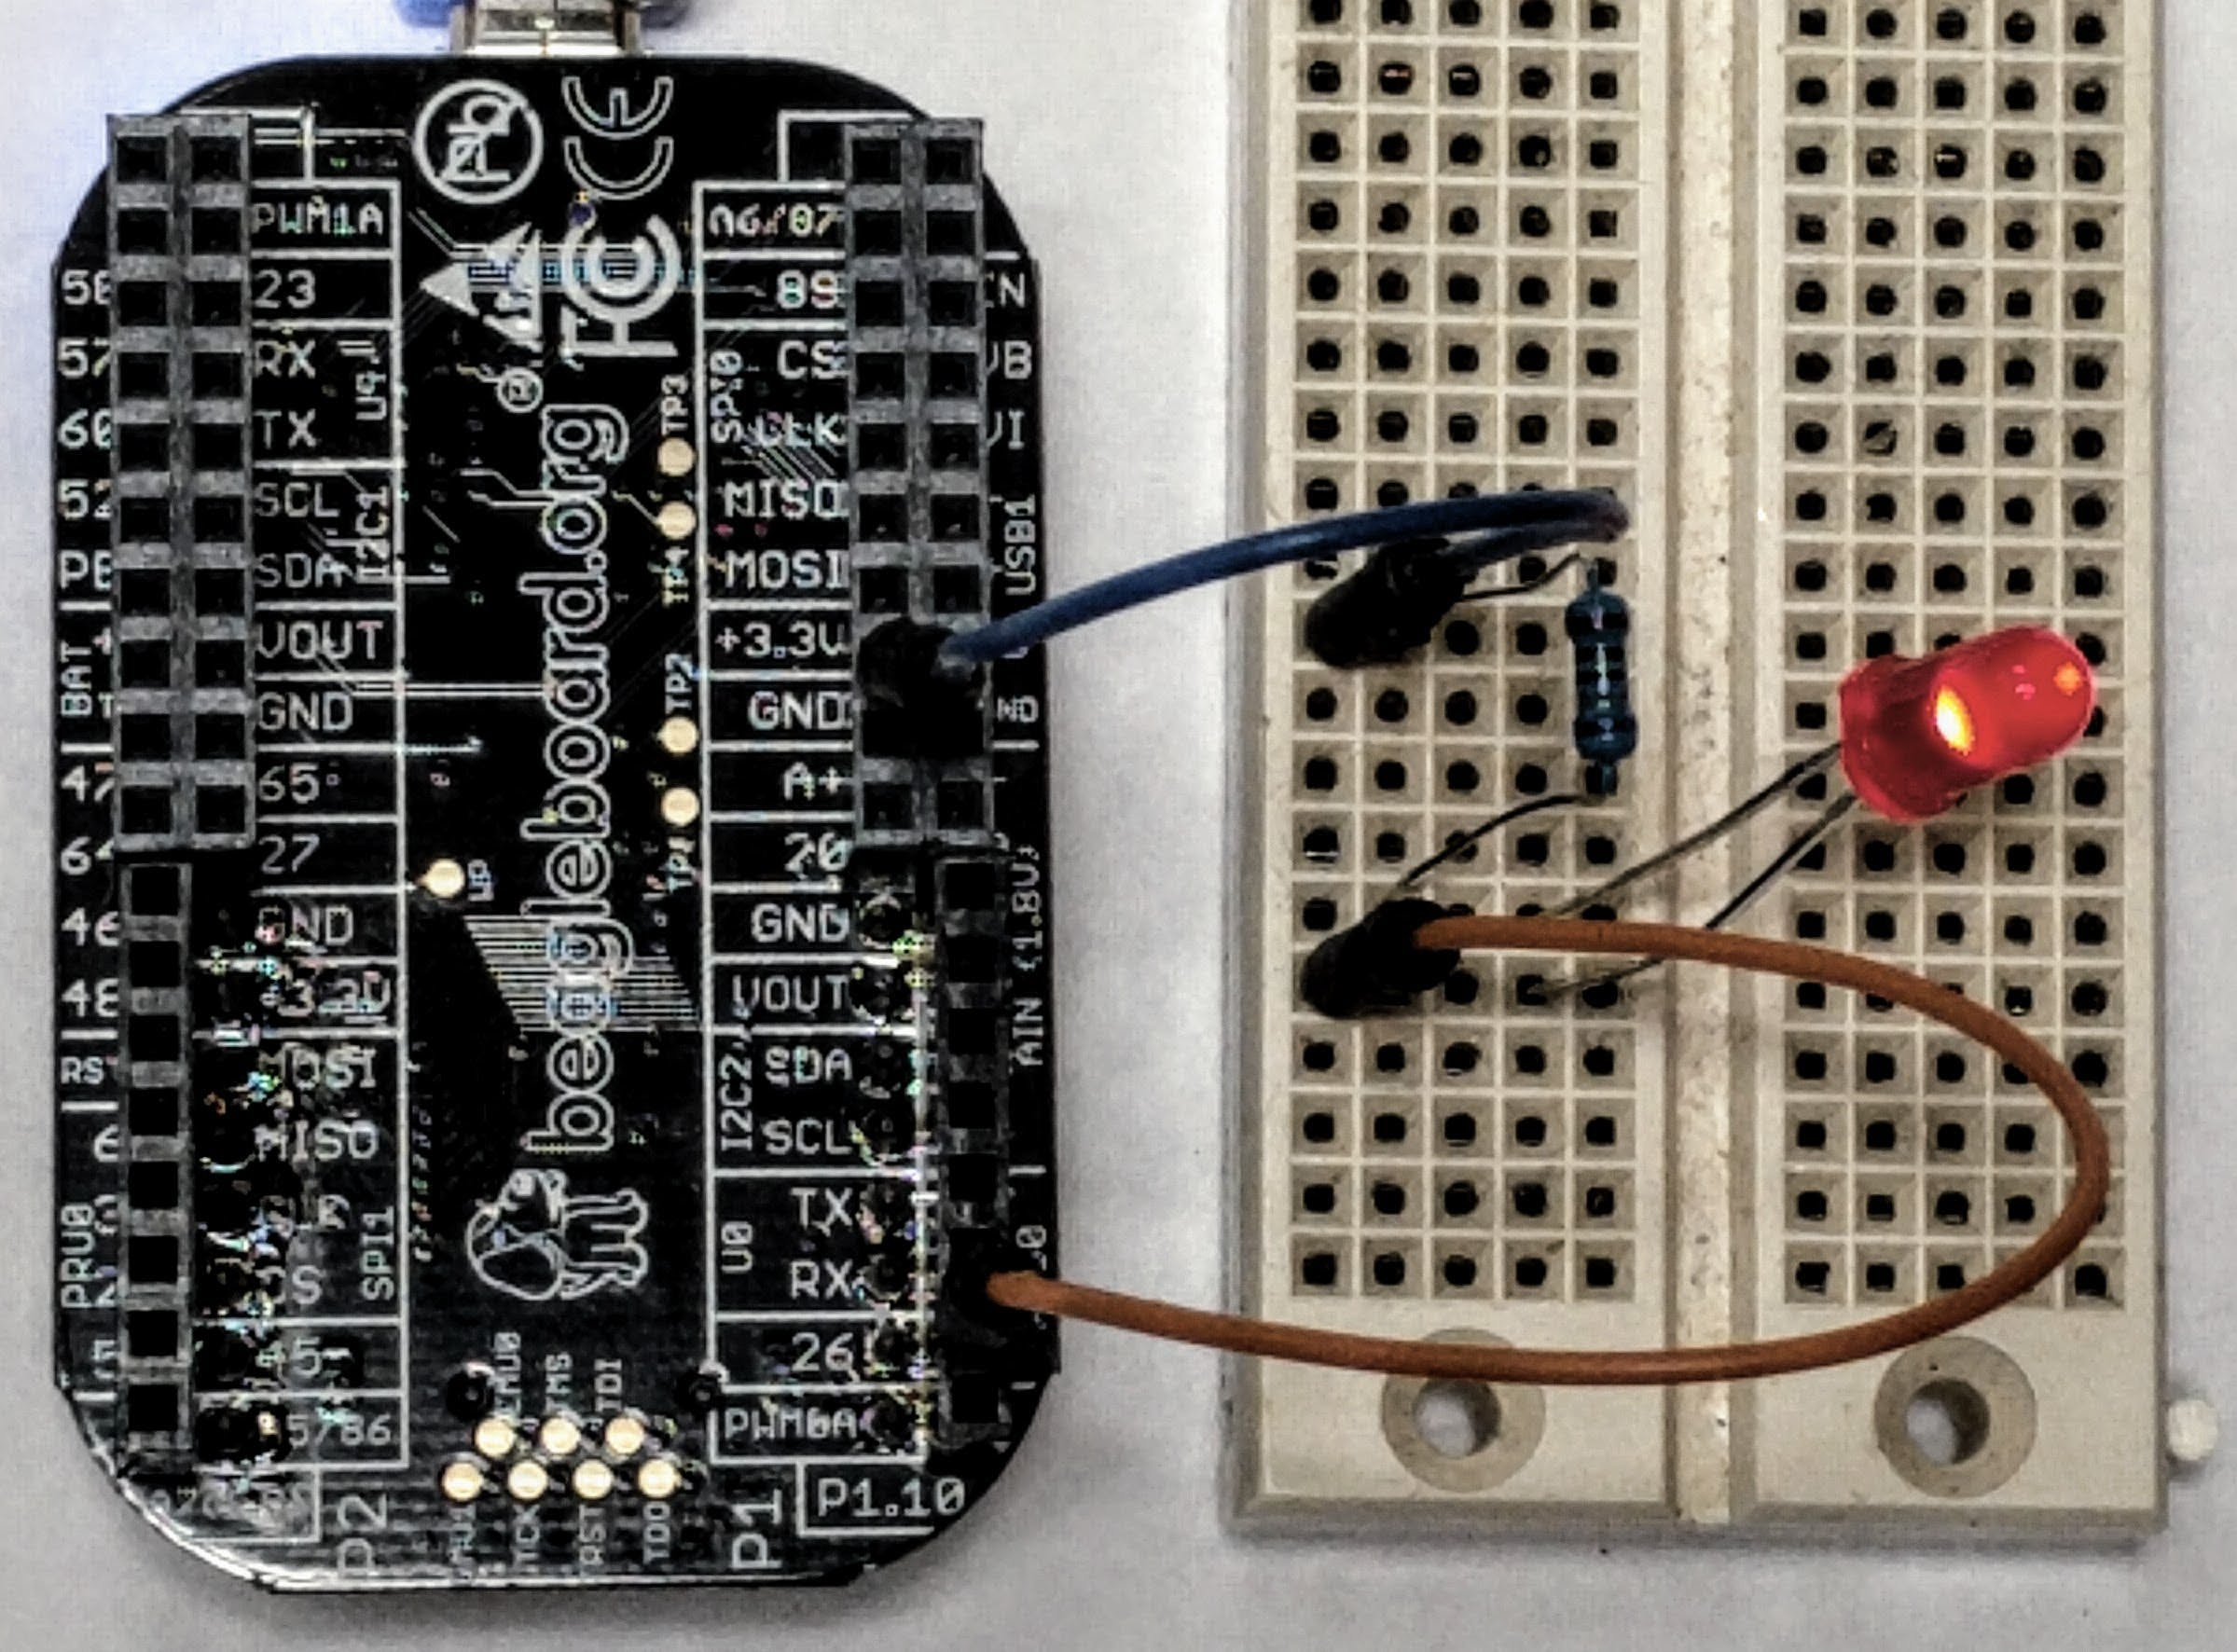 An LED connected to header P1 pin 33 can be controlled through GPIO 111.